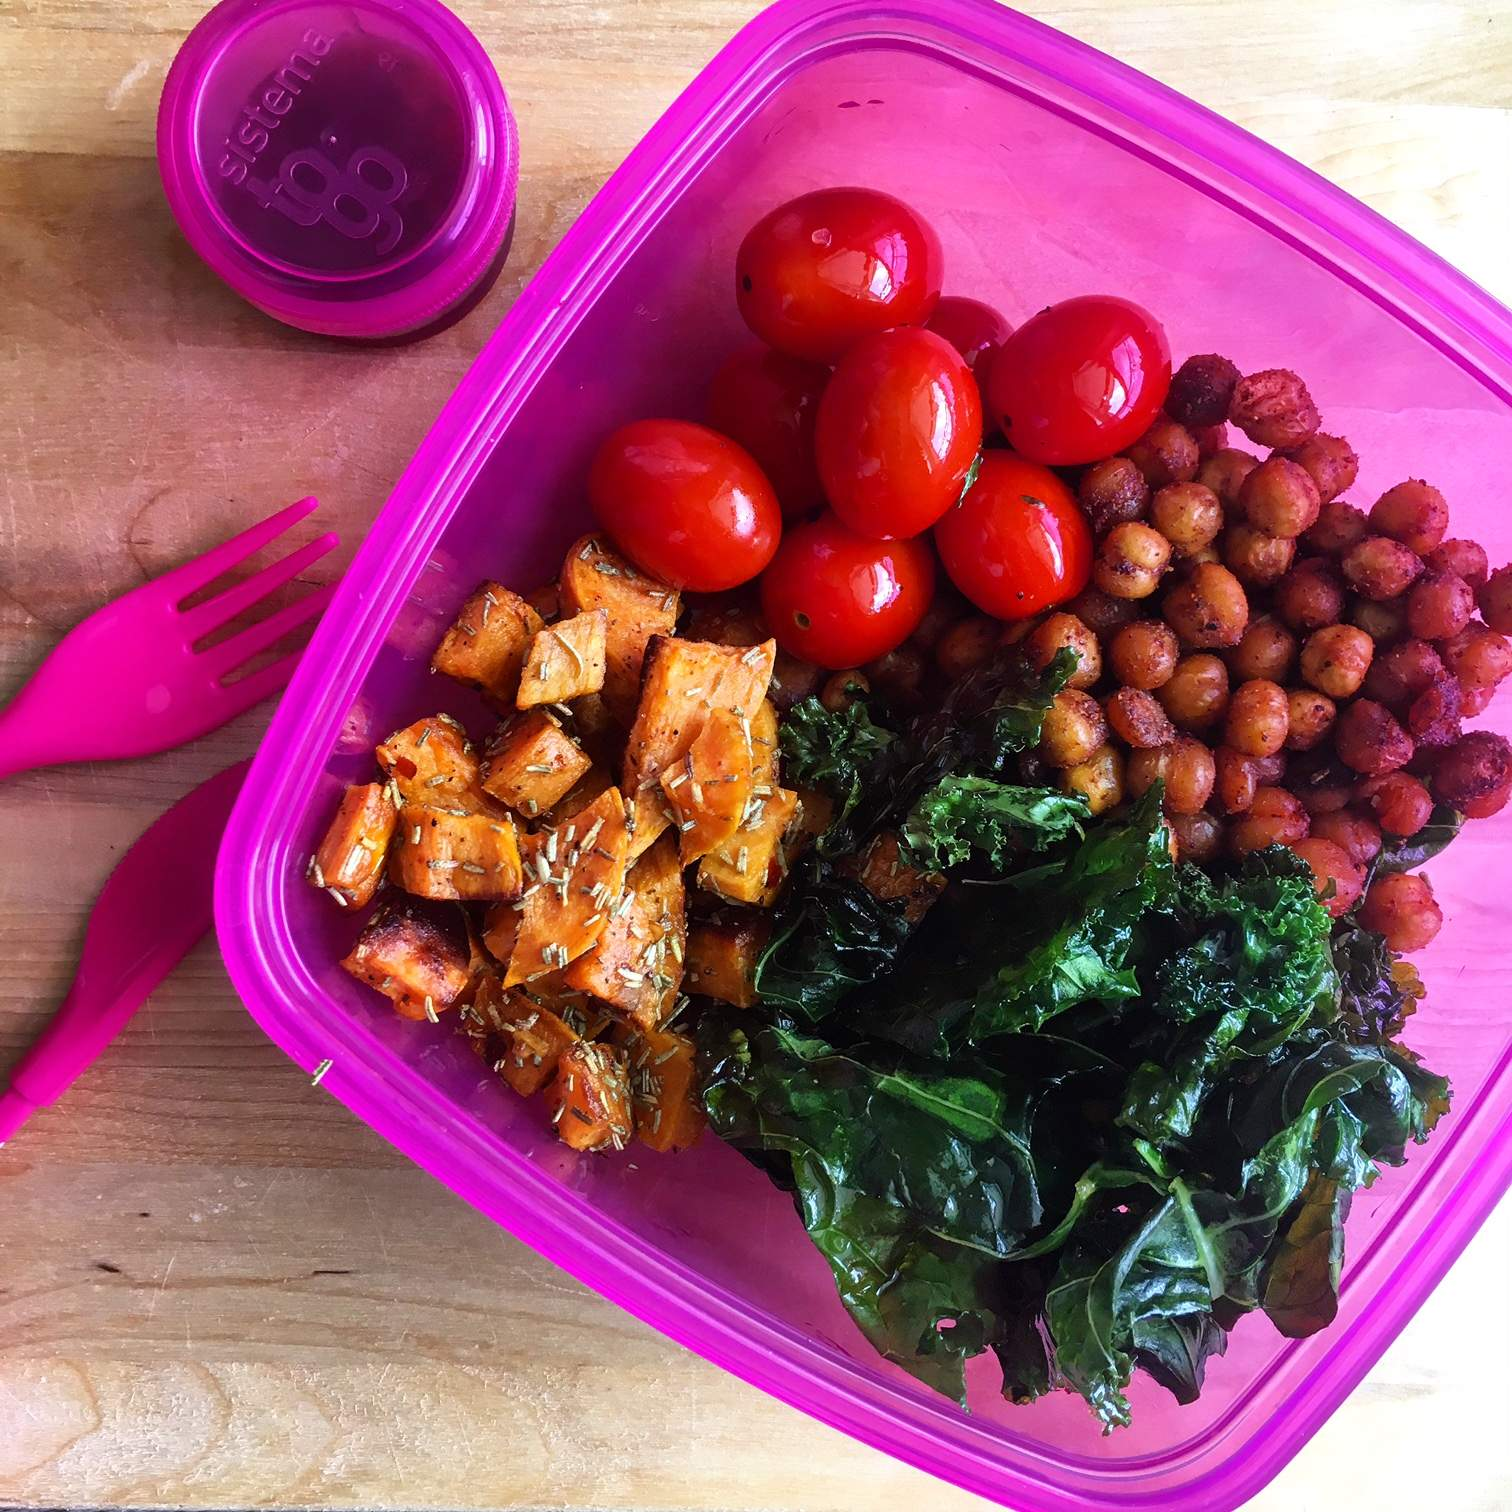 bento lunch box waterloo 15 favourite packed lunches ready in 15 minutes brand new bento box. Black Bedroom Furniture Sets. Home Design Ideas